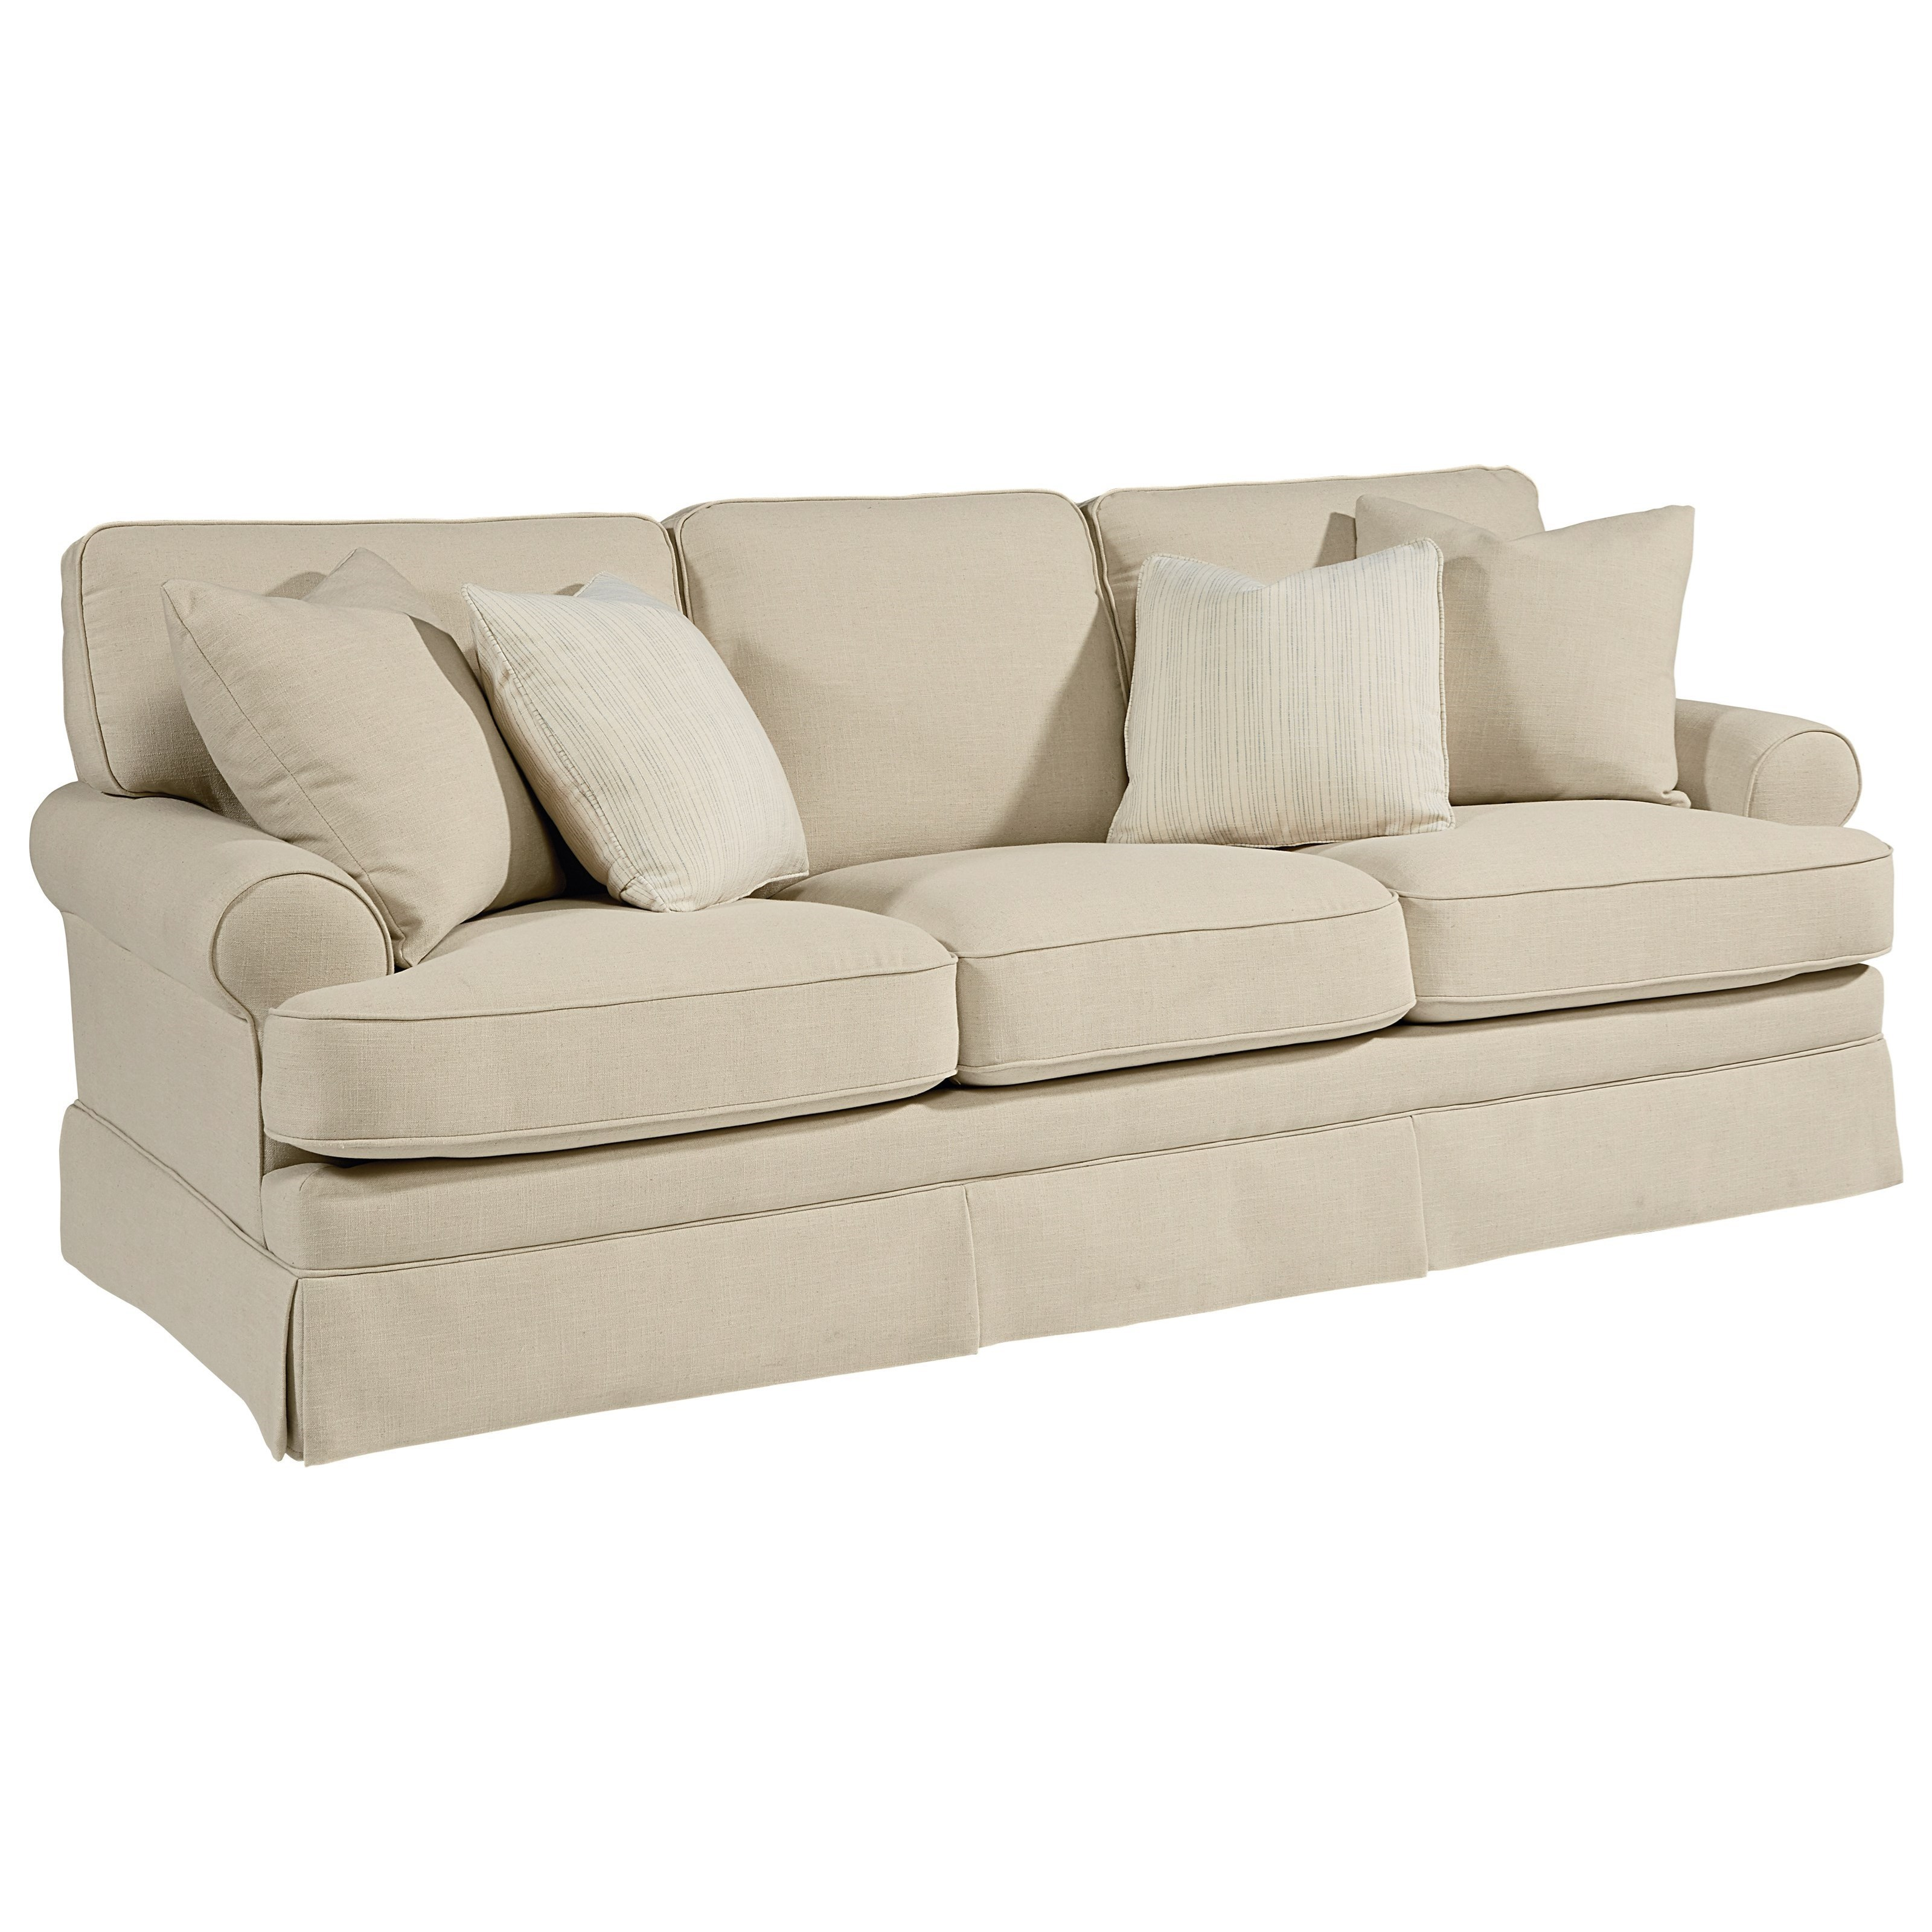 Magnolia Home by Joanna Gaines Heritage Sofa Miskelly  : heritage 39749076955507301 b1jpgscalebothampwidth500ampheight500ampfsharpen25ampdown from www.miskellys.com size 500 x 500 jpeg 23kB